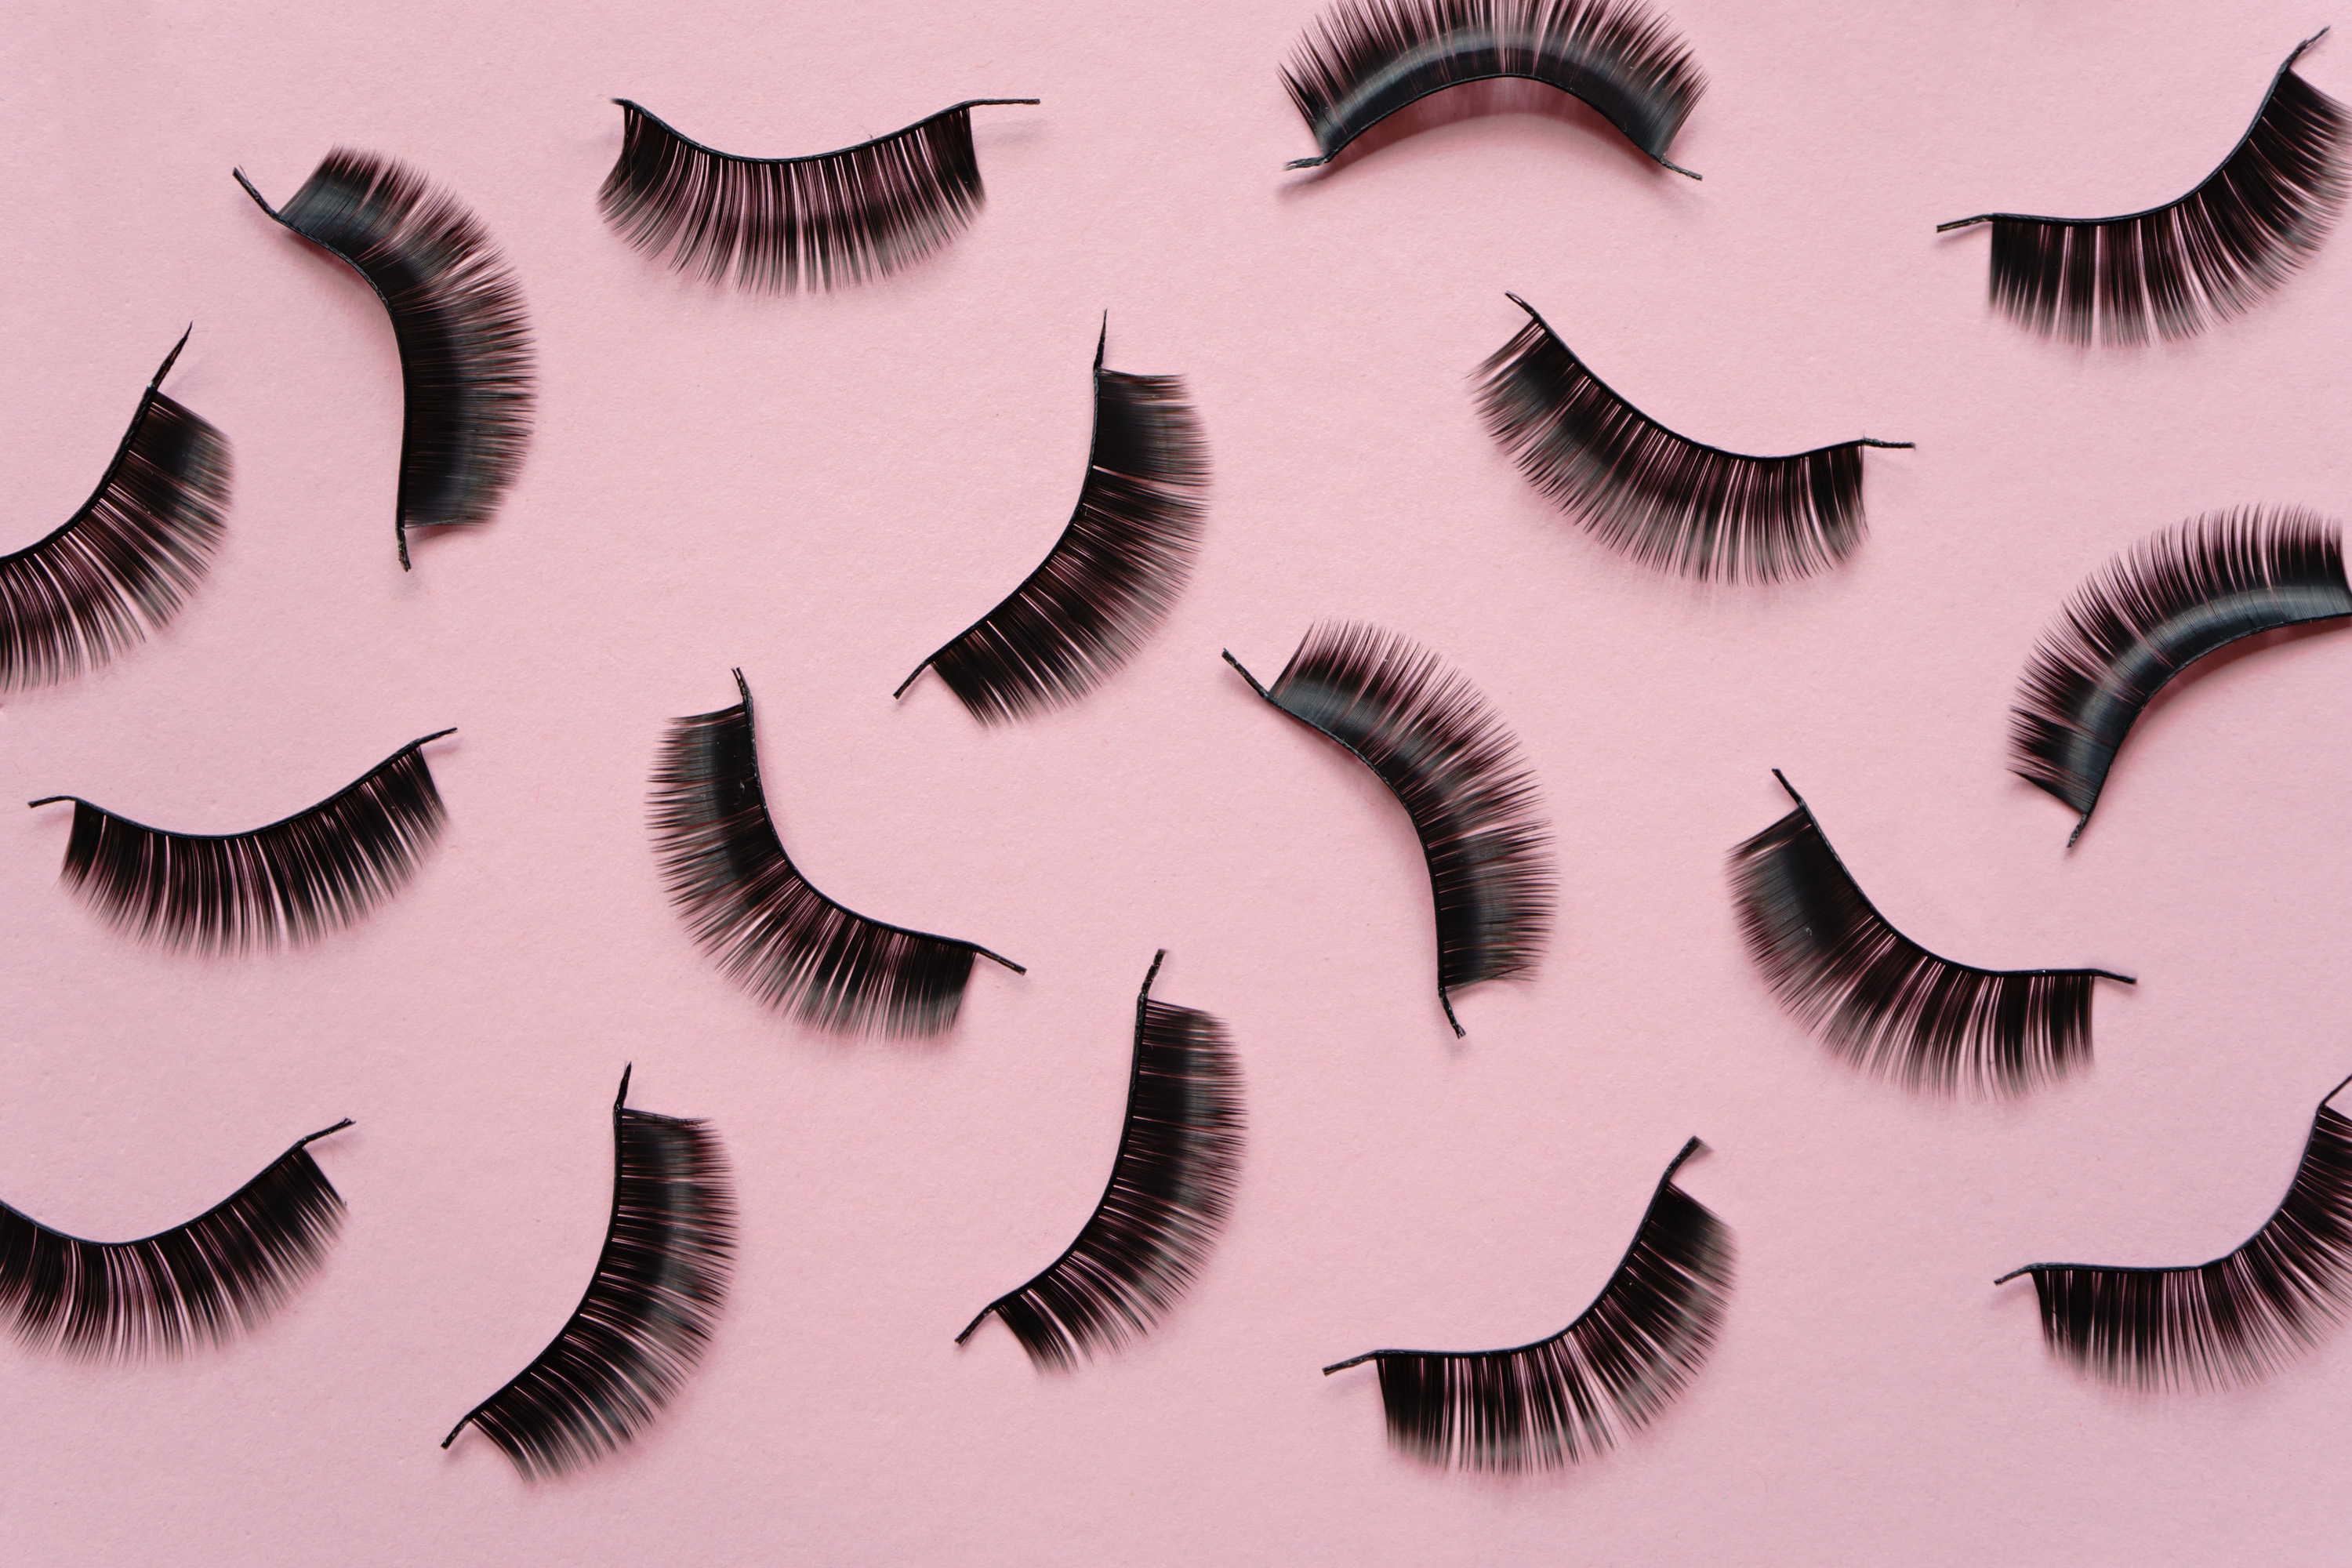 8548525a9dc Eyelash Extensions. Oliver's Looks at Current Beauty Trends